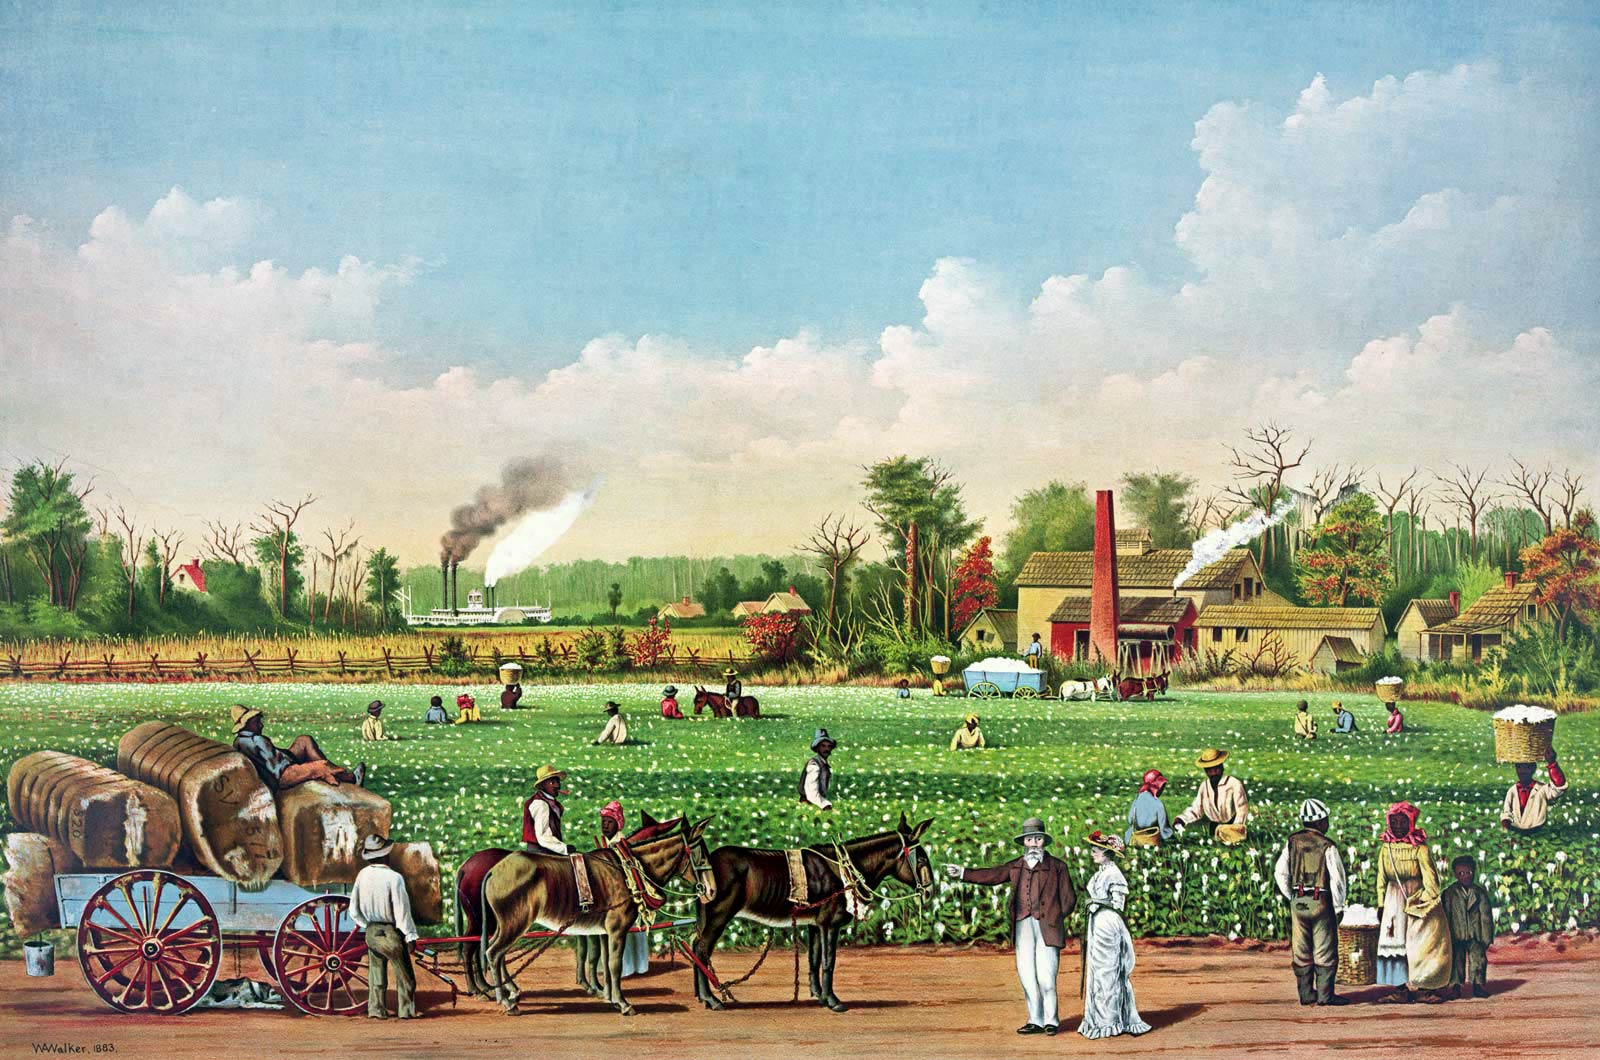 a overview of farmers discounted in the 1800s period in united states